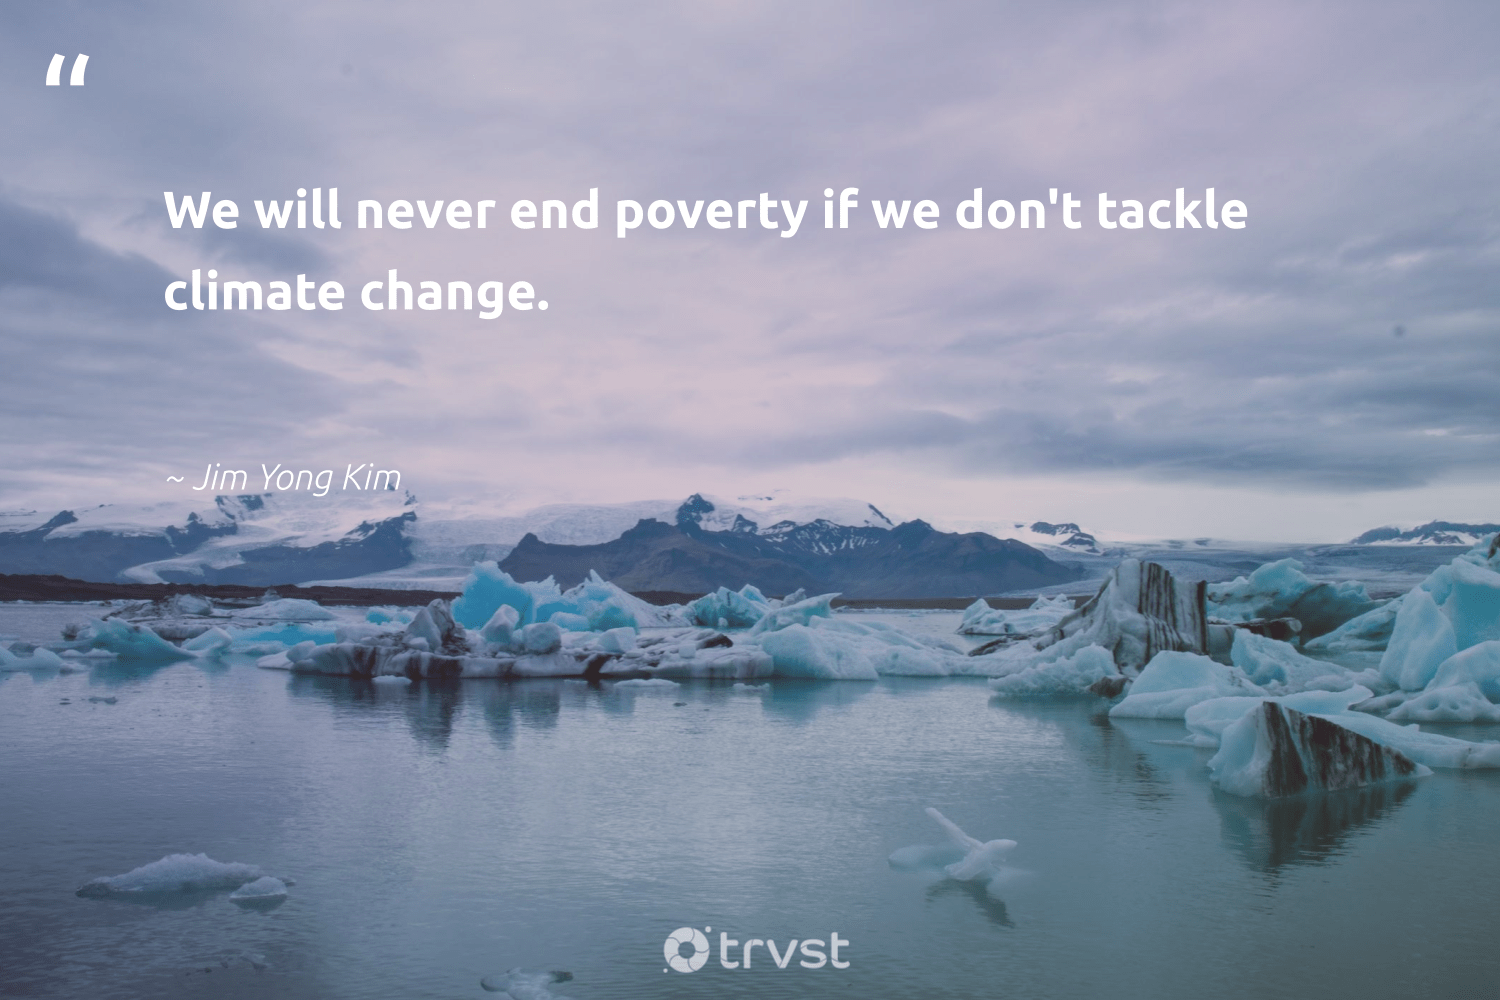 """""""We will never end poverty if we don't tackle climate change.""""  - Jim Yong Kim #trvst #quotes #climatechange #climate #poverty #endpoverty #climateaction #climatechangeisreal #ecoconscious #globalwarming #planetearthfirst #co2"""